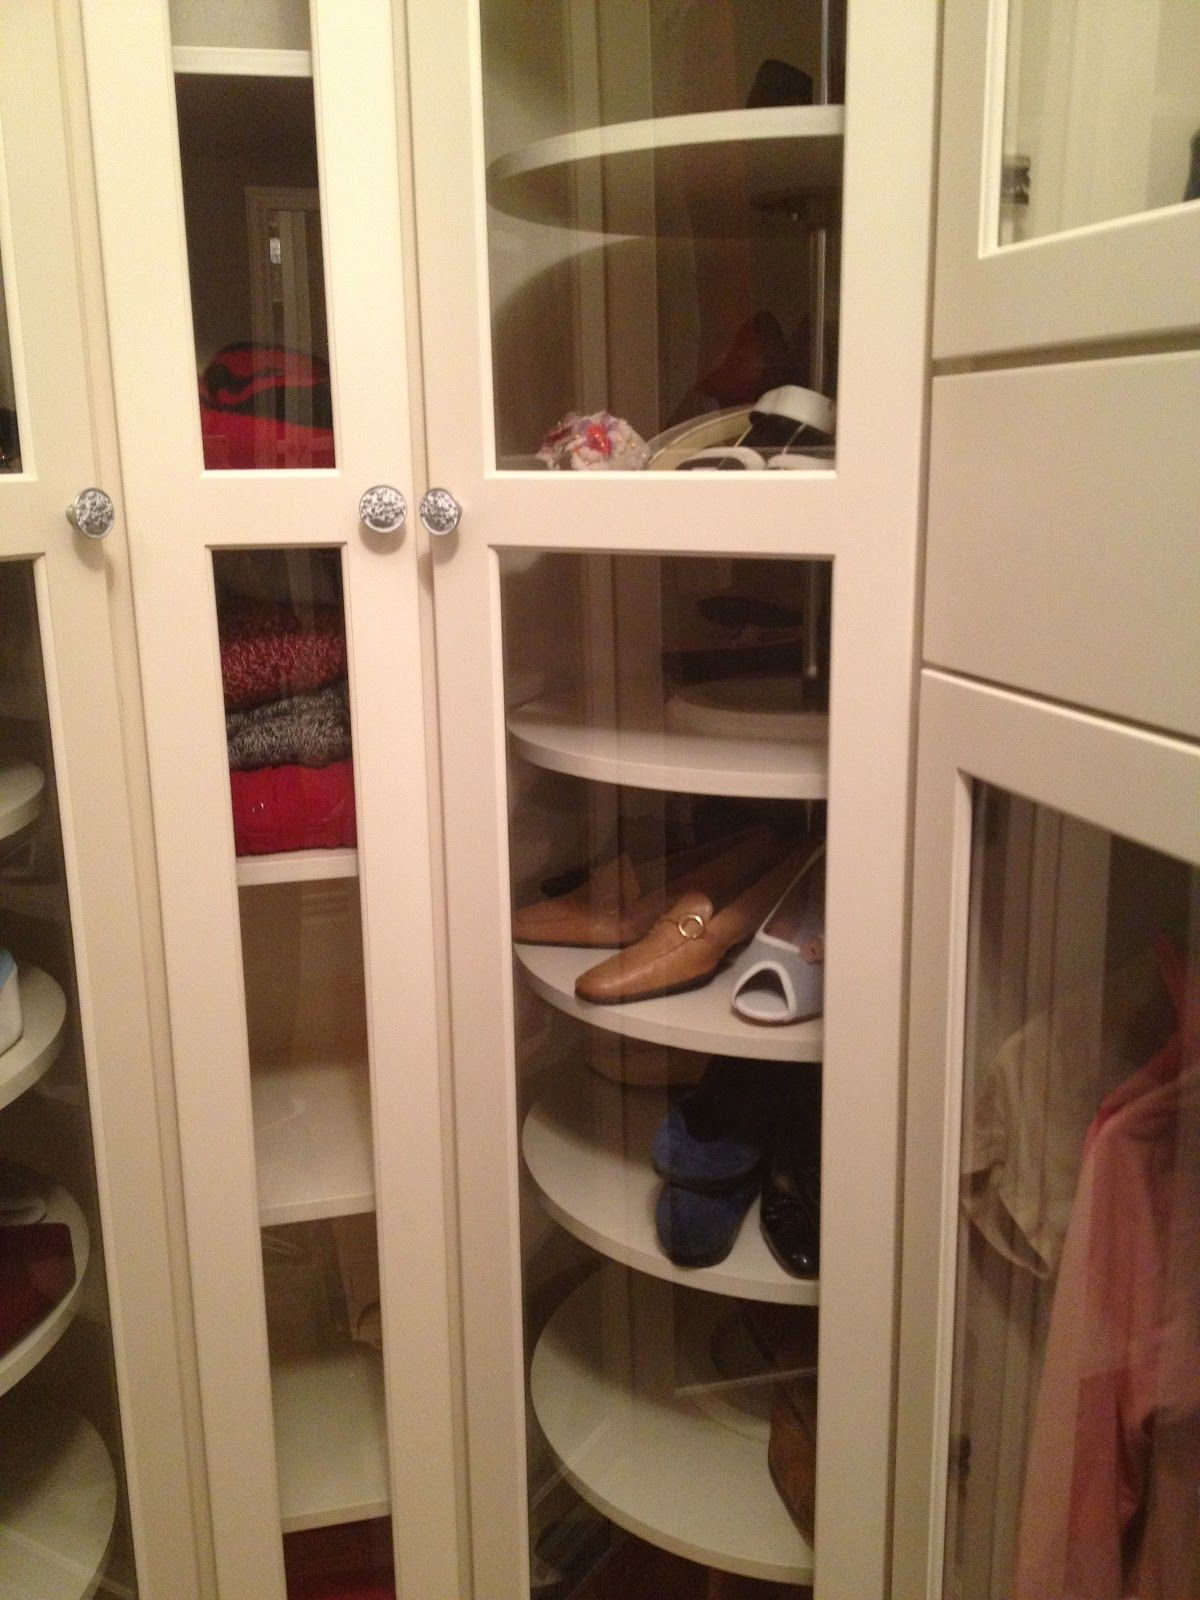 Incroyable Lazy Susan In The Closet For Shoes And Purses.   GENIUS.